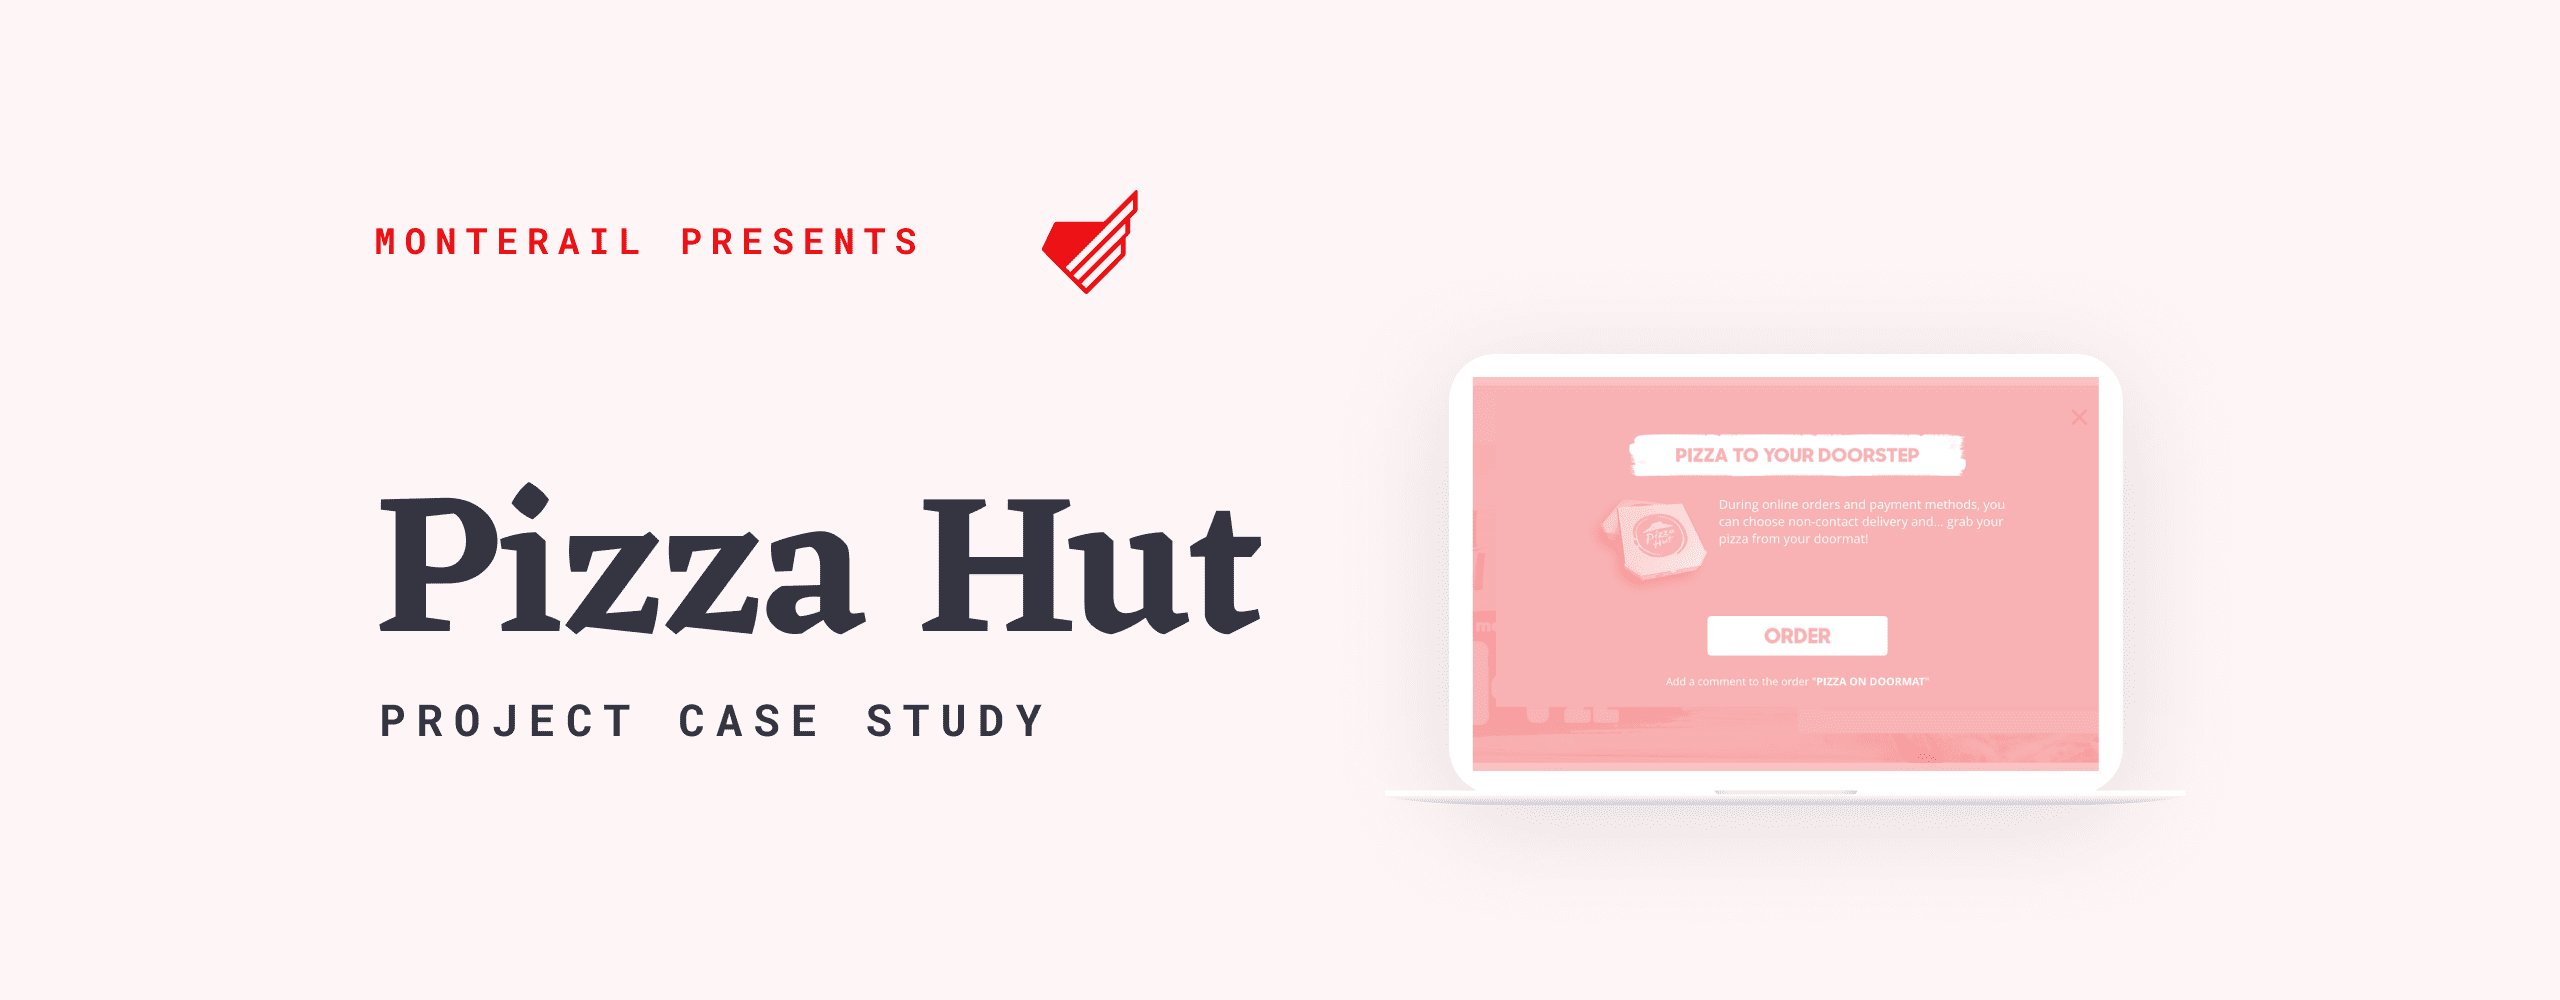 Pizza Hut case study featured image